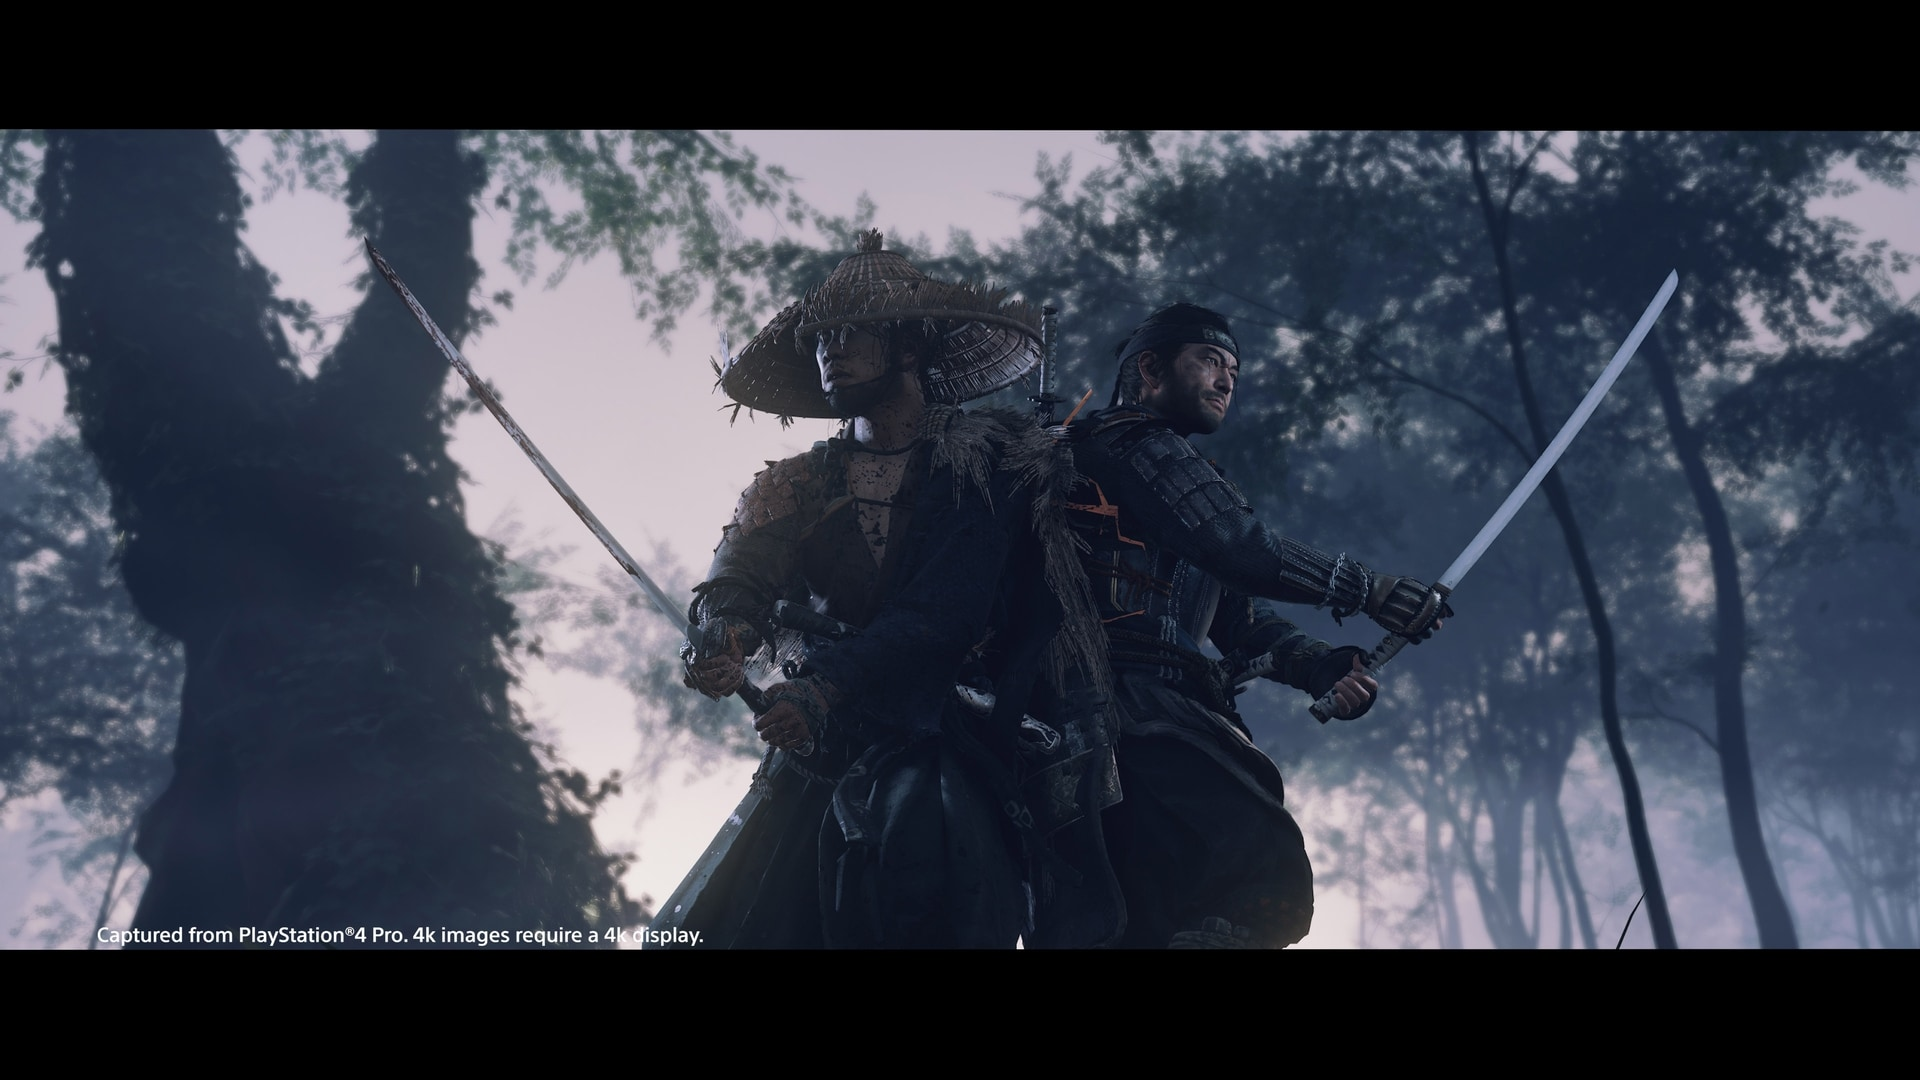 Ghost of Tsushima (PS4) - Physical Copy - 11